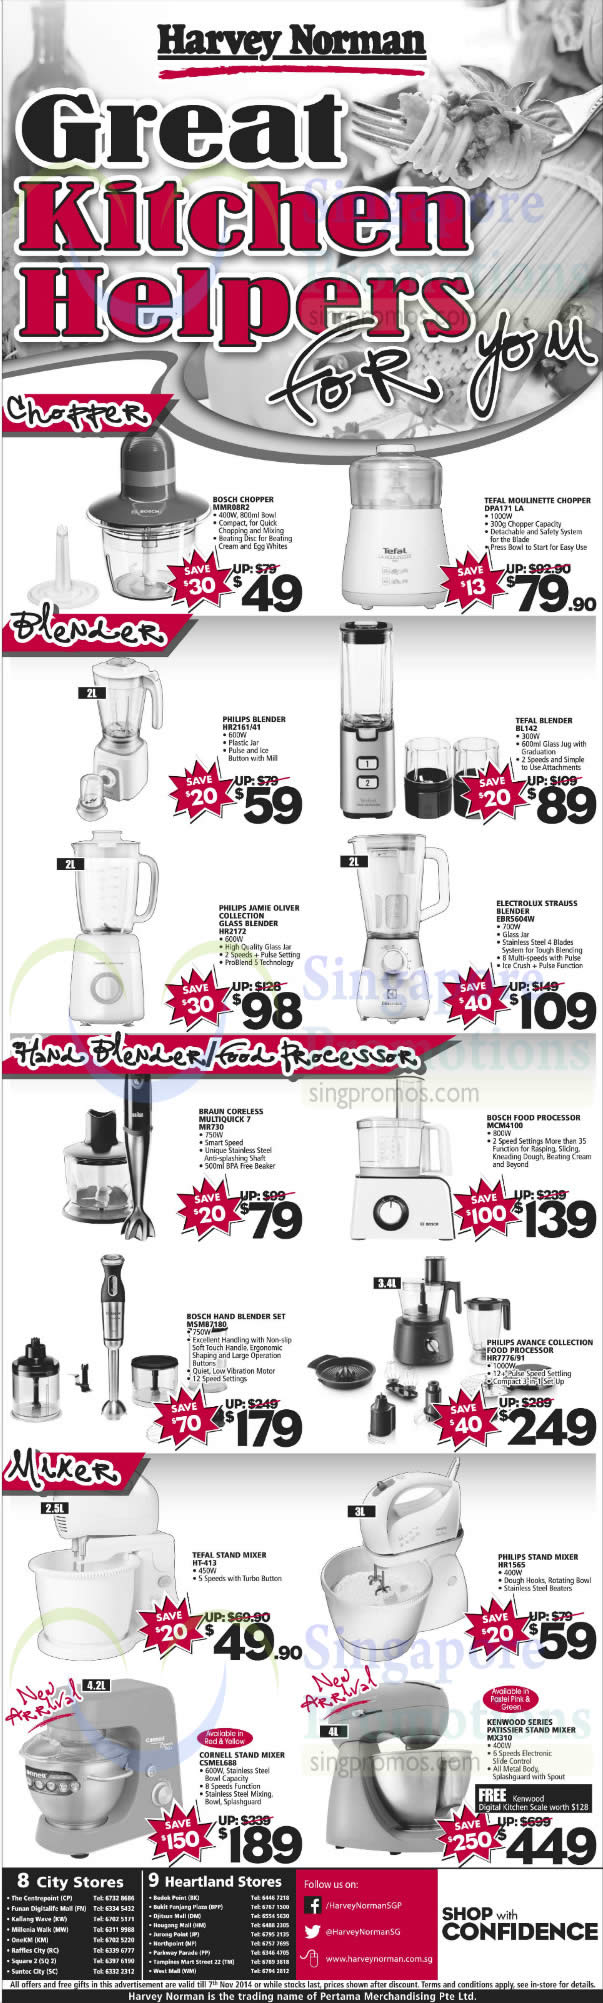 Bosch MMR08R2 Chopper, Tefal DPA171LA Chopper, Philips HR2161/41 Blender, Tefal BL142 Blender, Philips HR2172 Blender, Electrolux EBR5604W Blender, Braun MR730 Multiquick 7, Bosch MCM4100 Food Processor, Bosch MSM87180 Hand Blender Set, Philips HR7776/91 Food Processor, Tefal HT-413 Stand Mixer, Philips HR1565 Stand Mixer, Cornell CSMEL688 Stand Mixer and Kenwood MX310 Stand Mixer